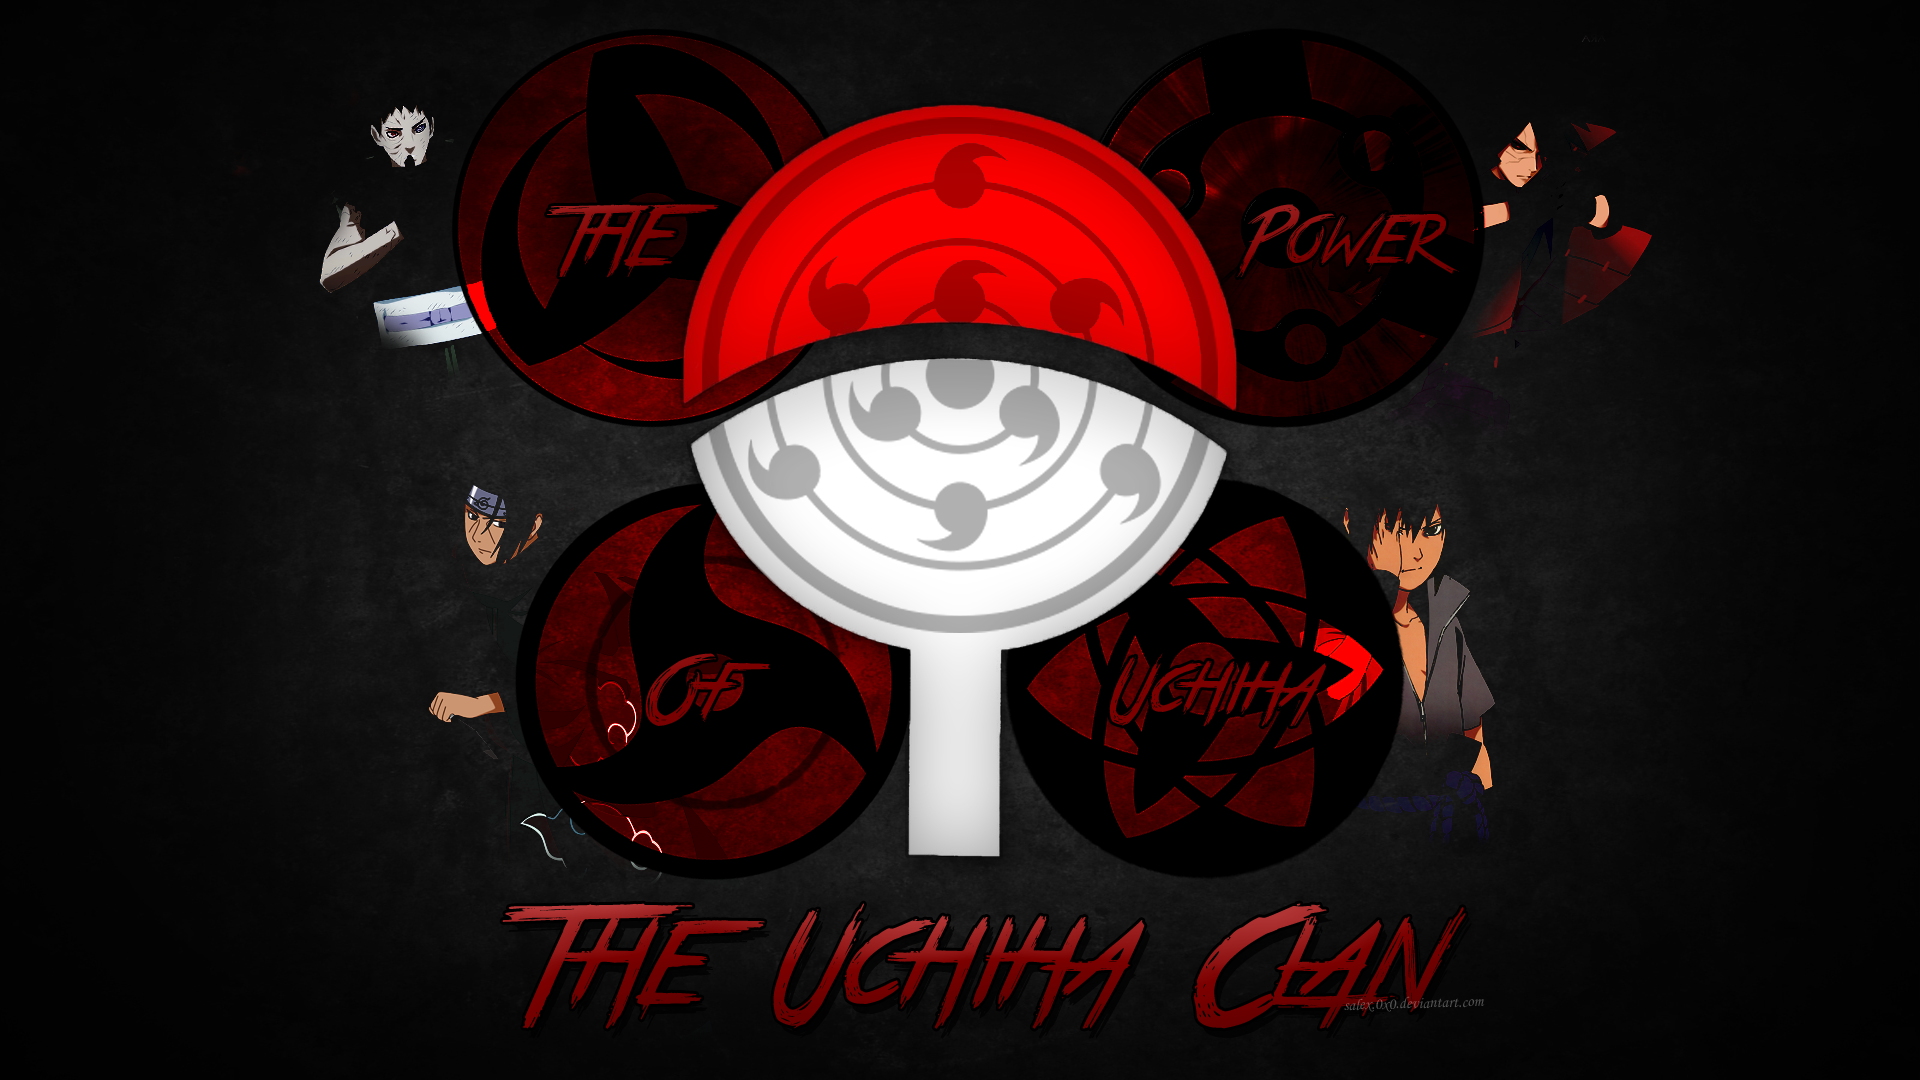 uchiha symbol wallpaper - wallpapersafari